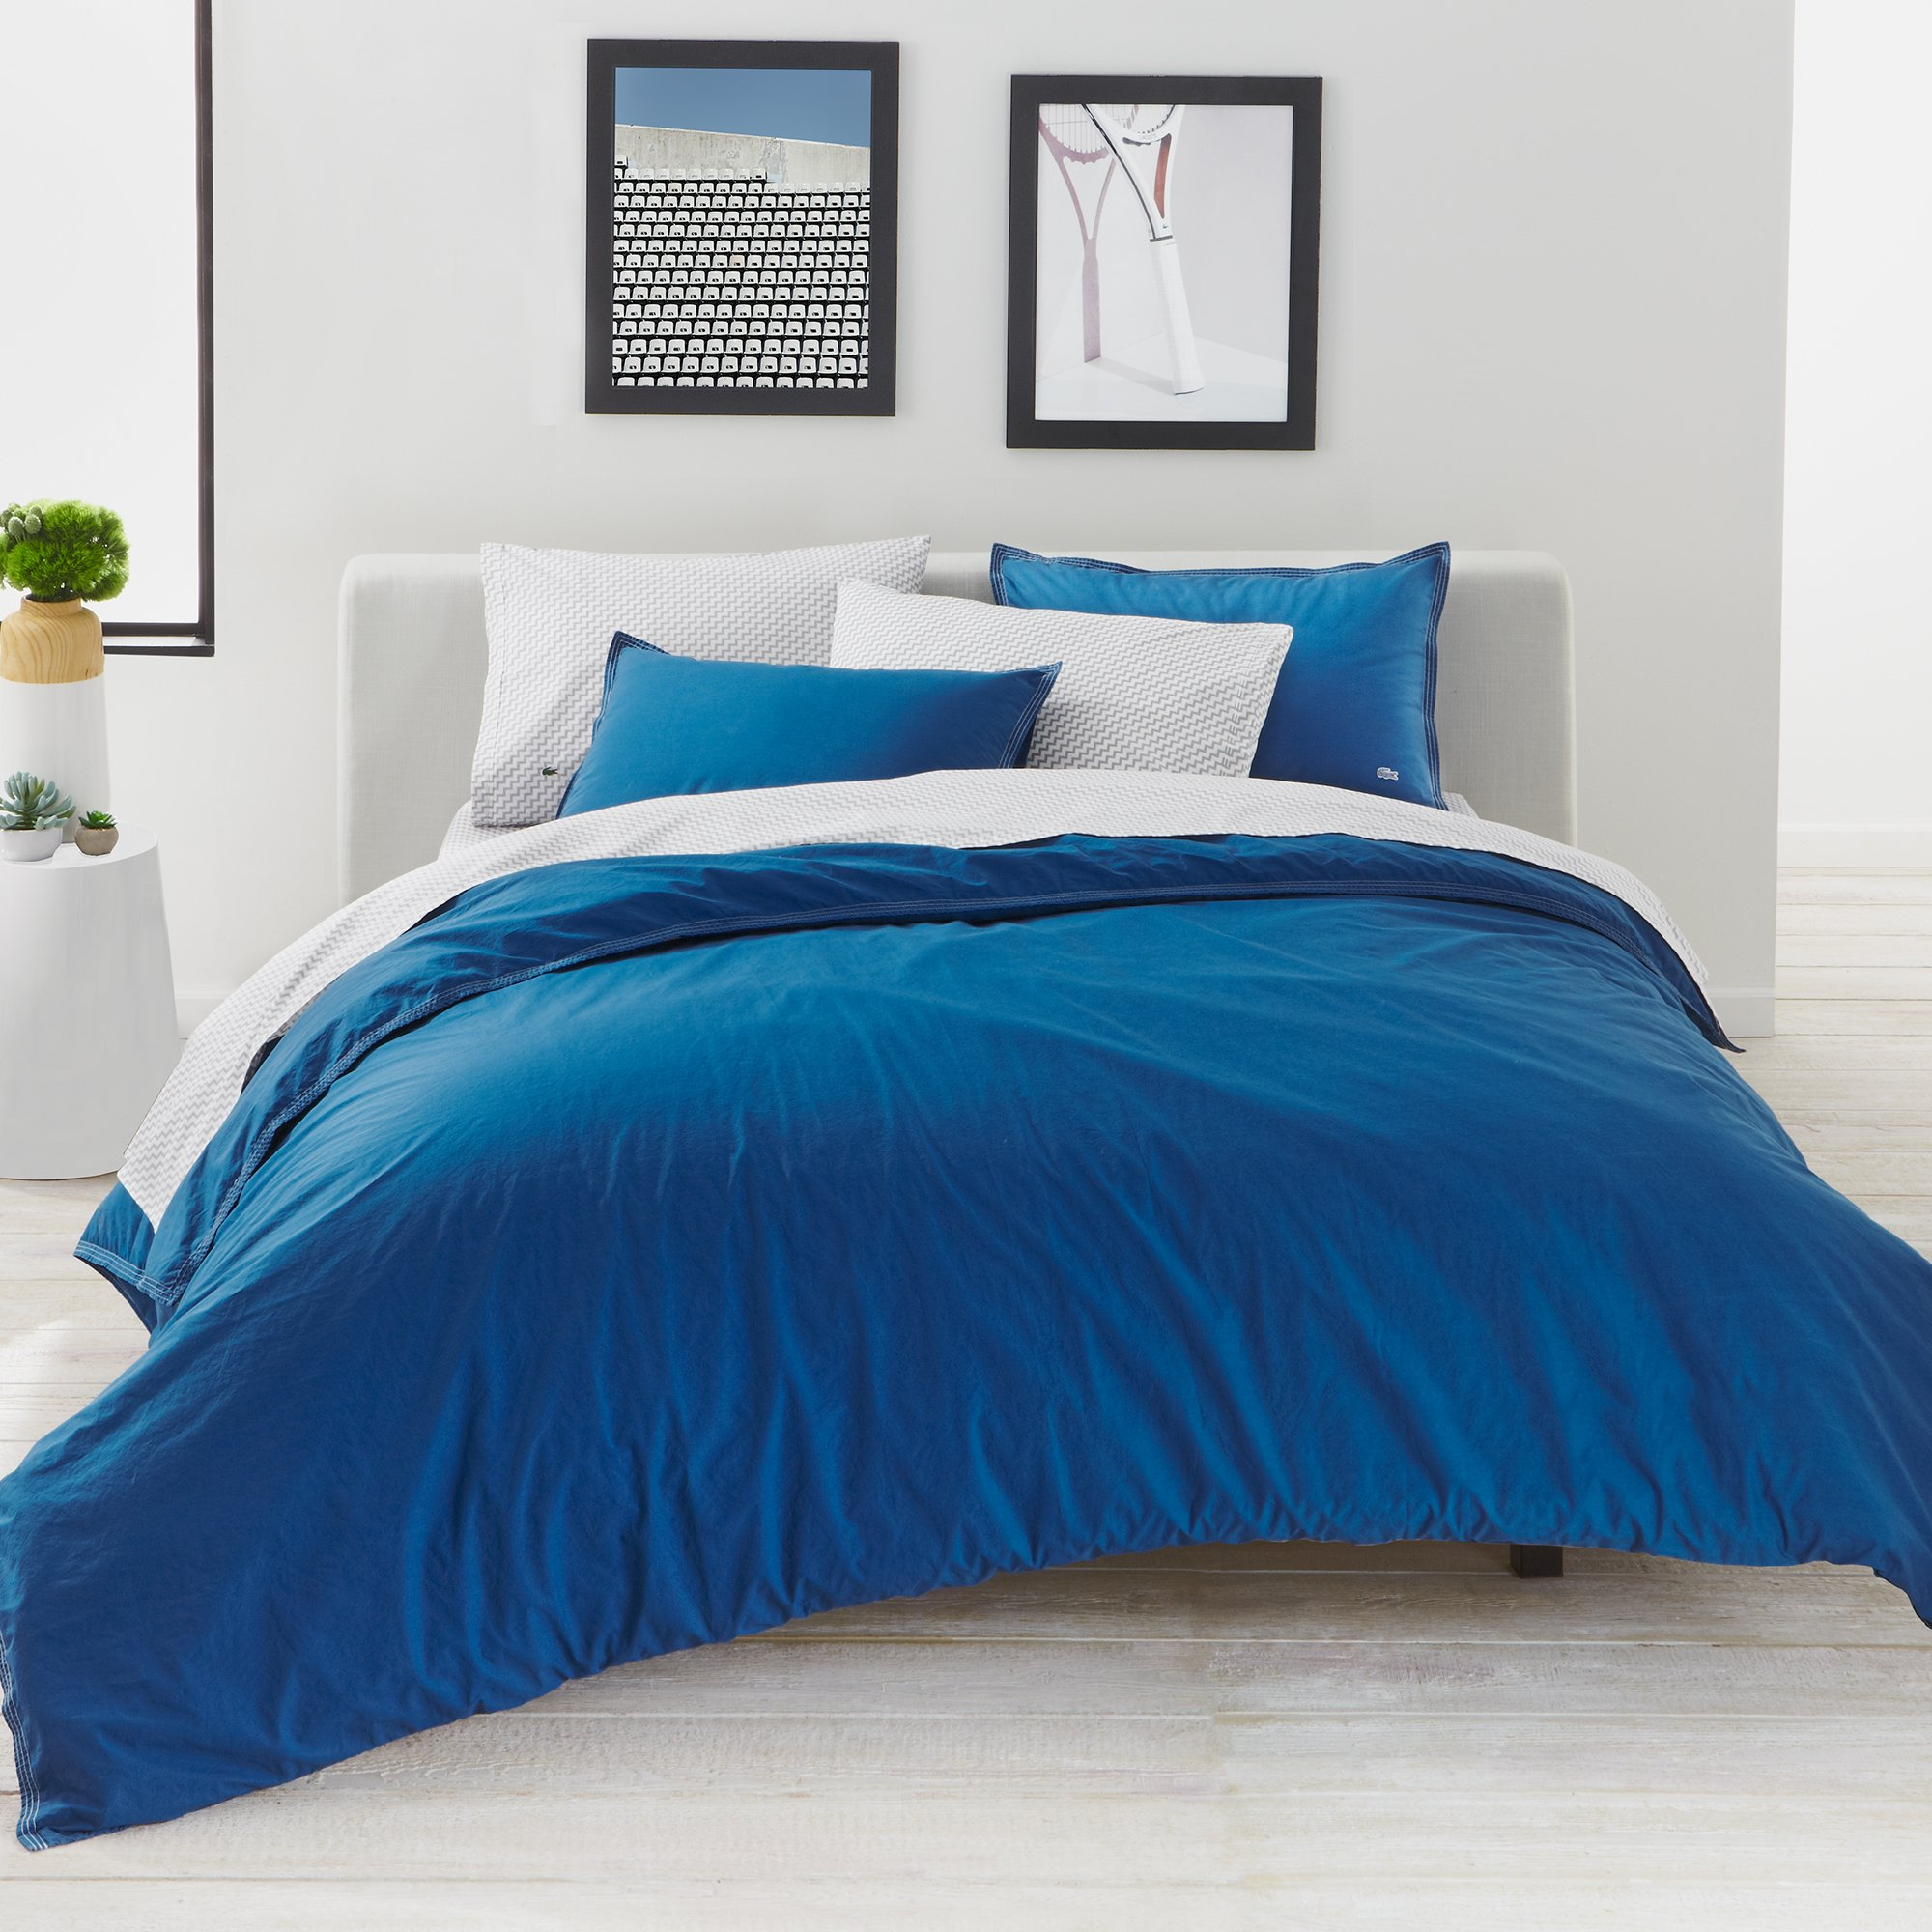 Lacoste Washed Solid Duvet Set, Blue Sapphire, Twin/Twin Extra Long